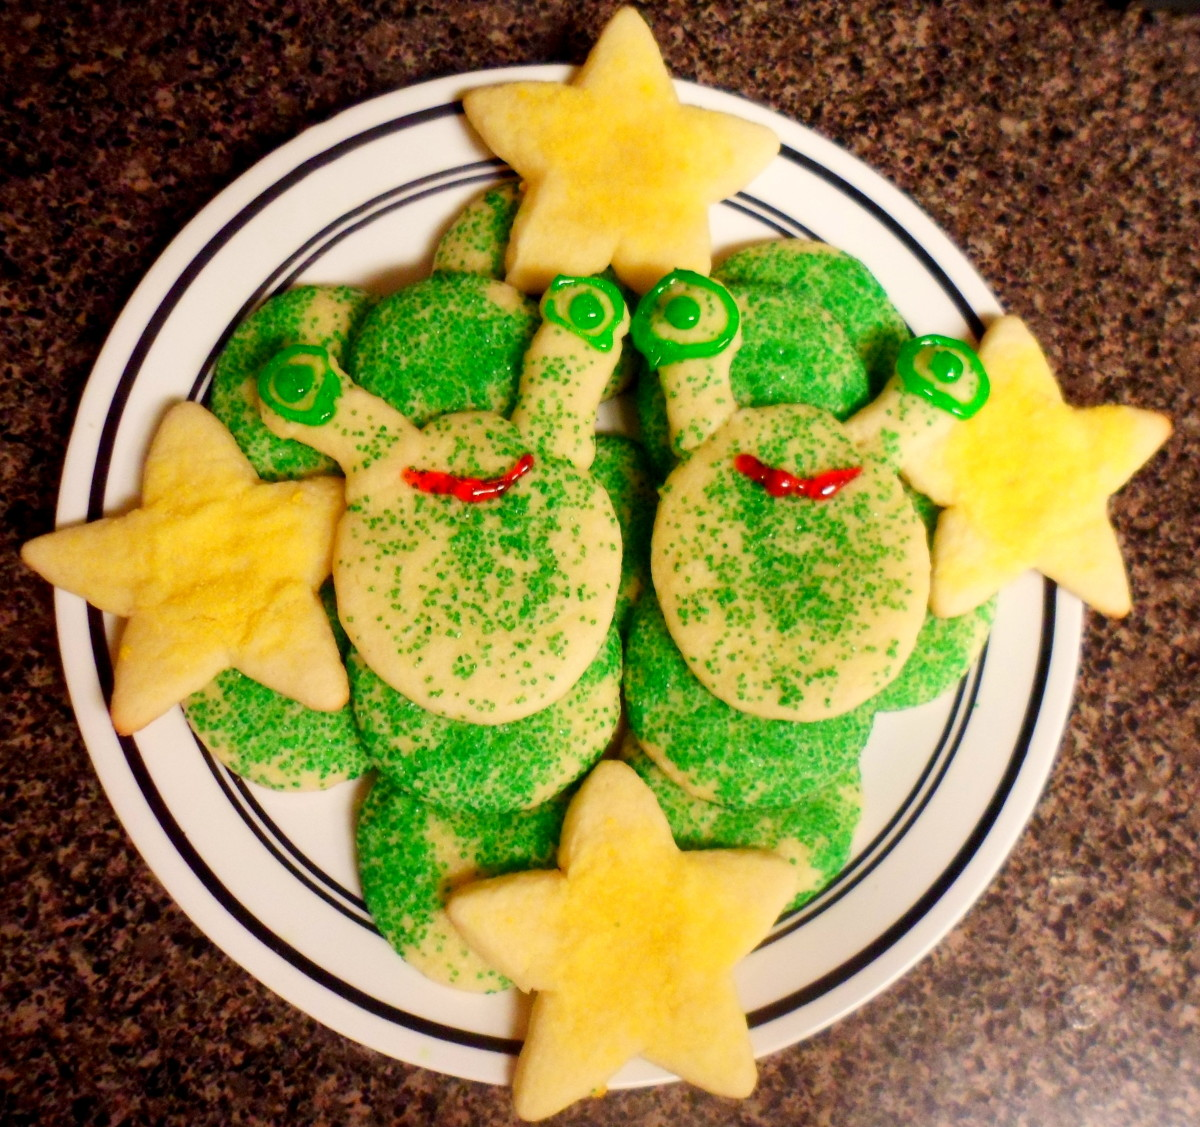 Our finished alien themed cookies.